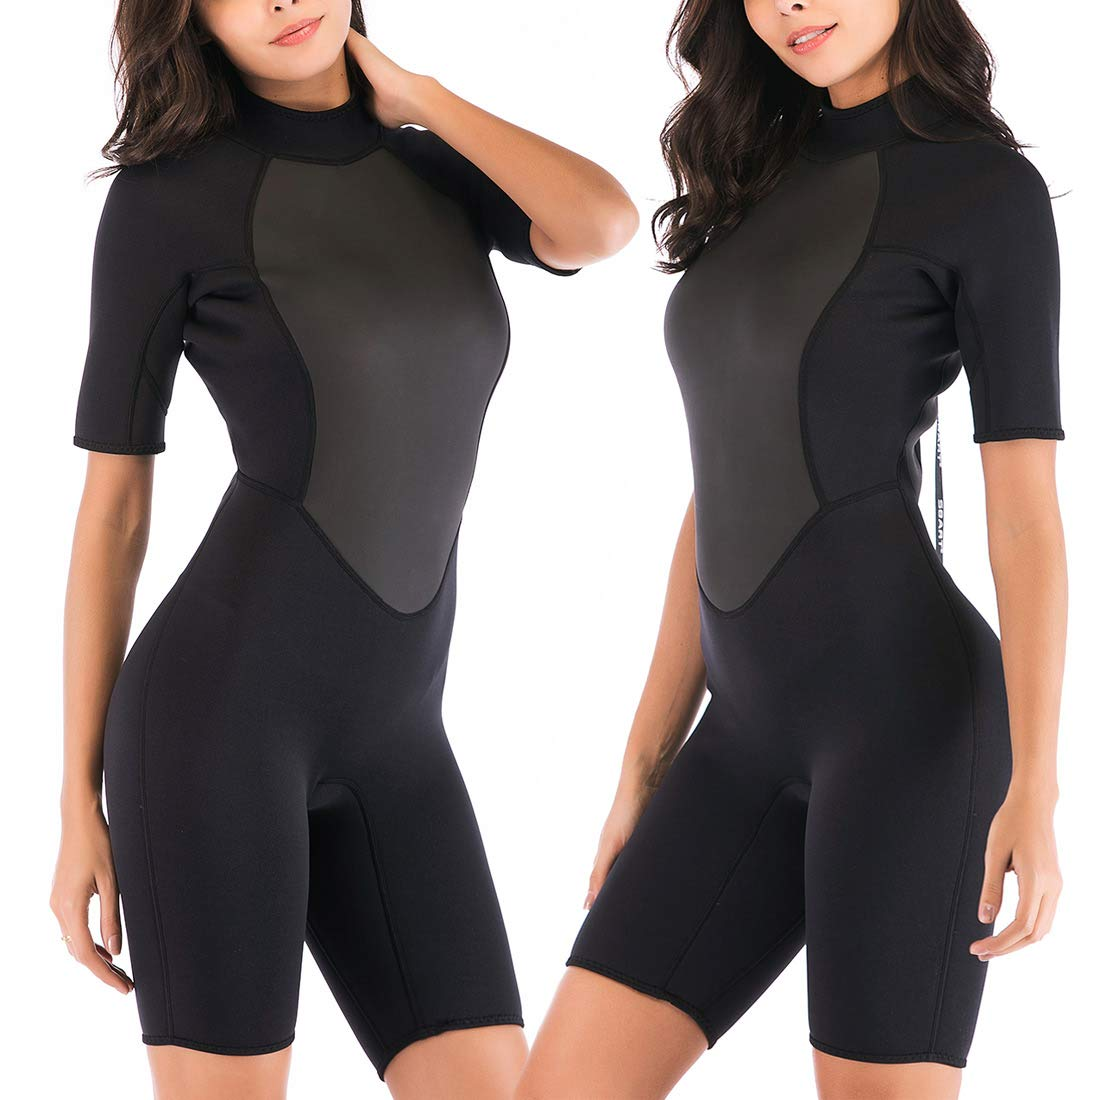 Sbart Womens 2mm Neoprene Shorty Wetsuit Thermal Warm Swimsuit Diving Suit